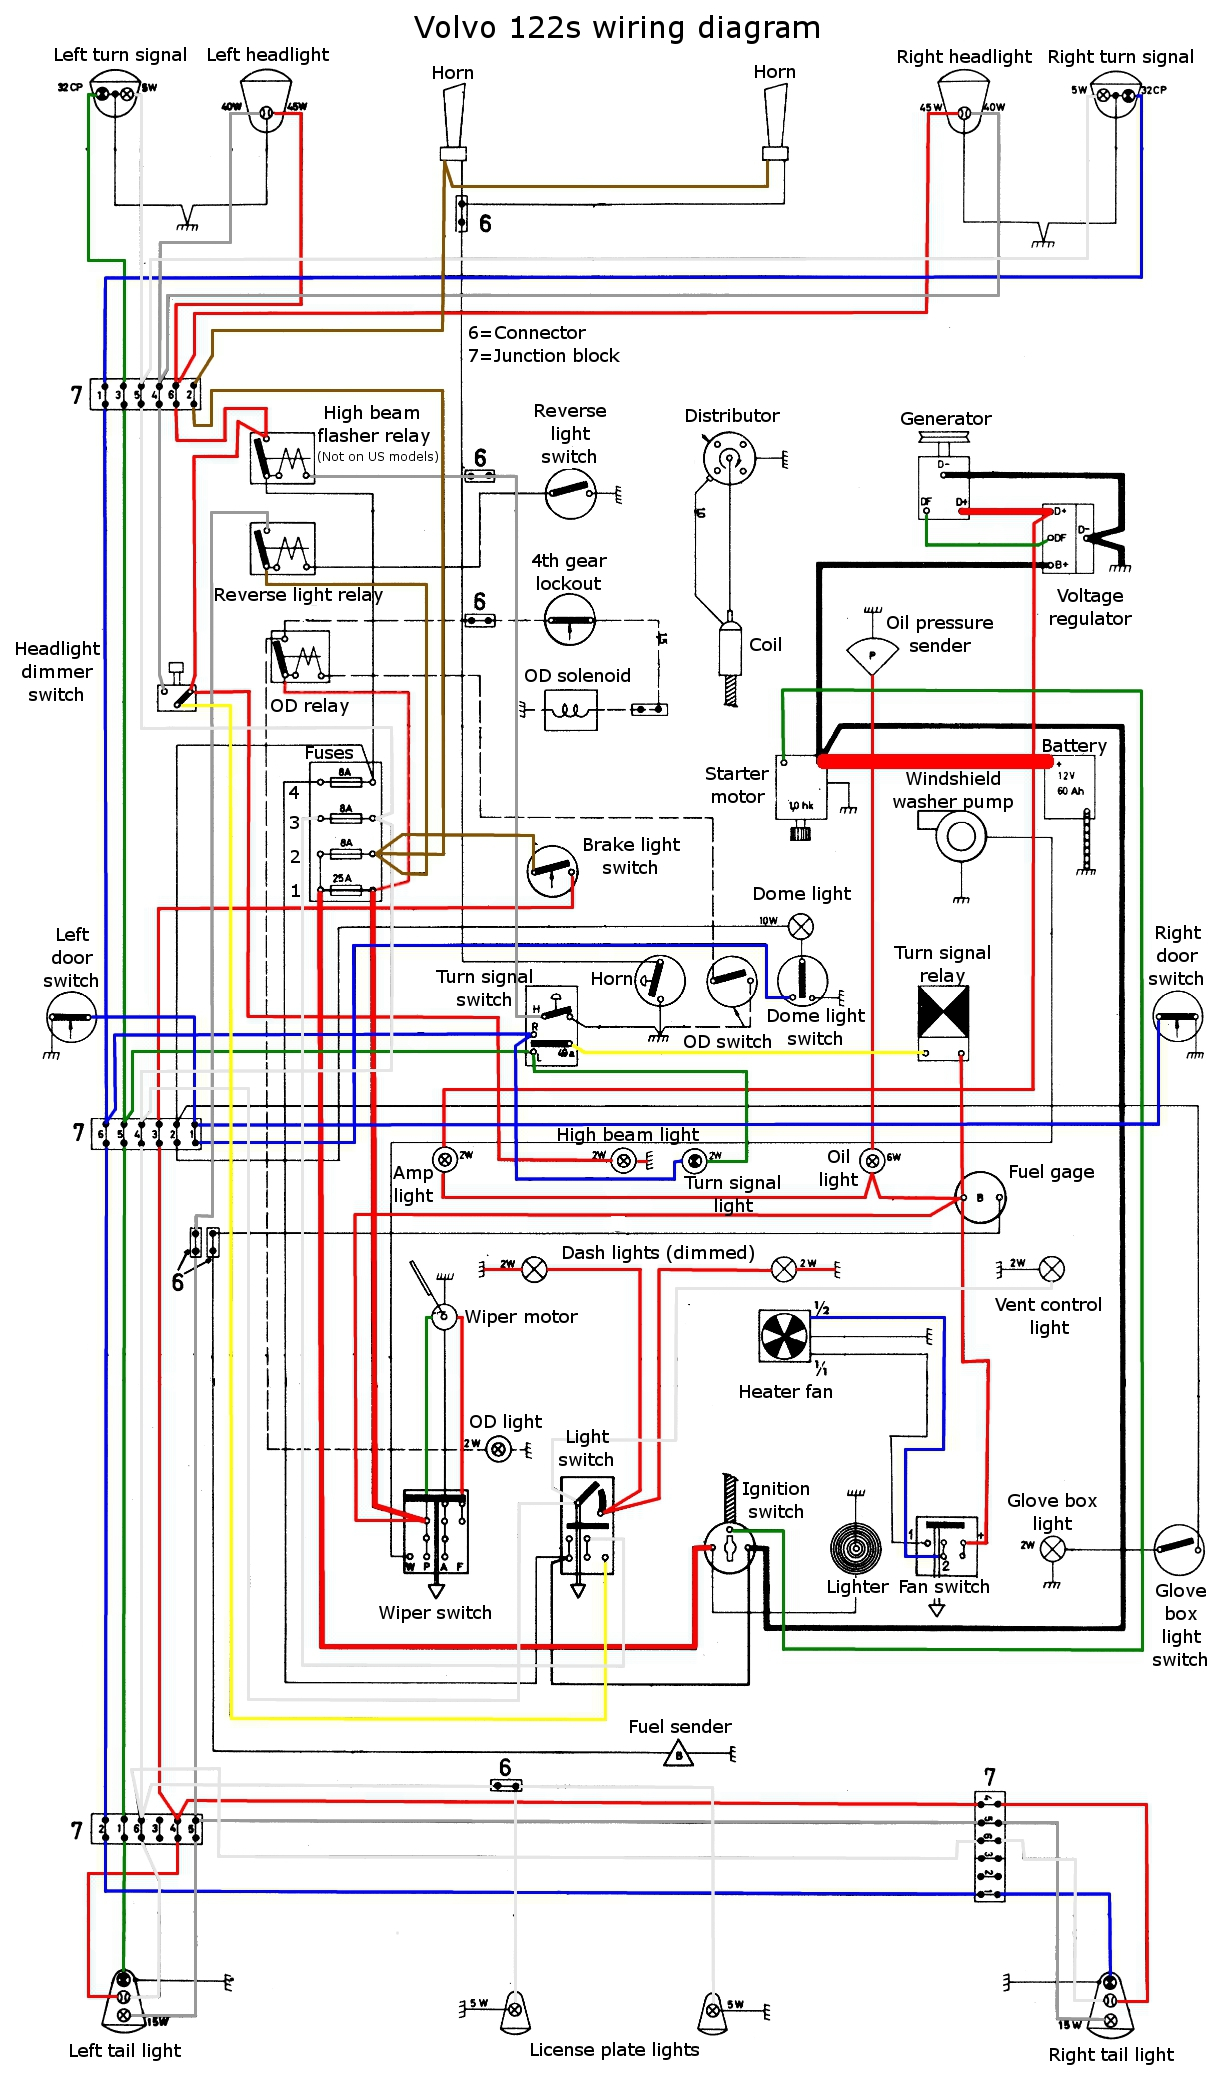 122 wiring diagram color wiring gremlins Vw R32 Wiring Diagram at eliteediting.co